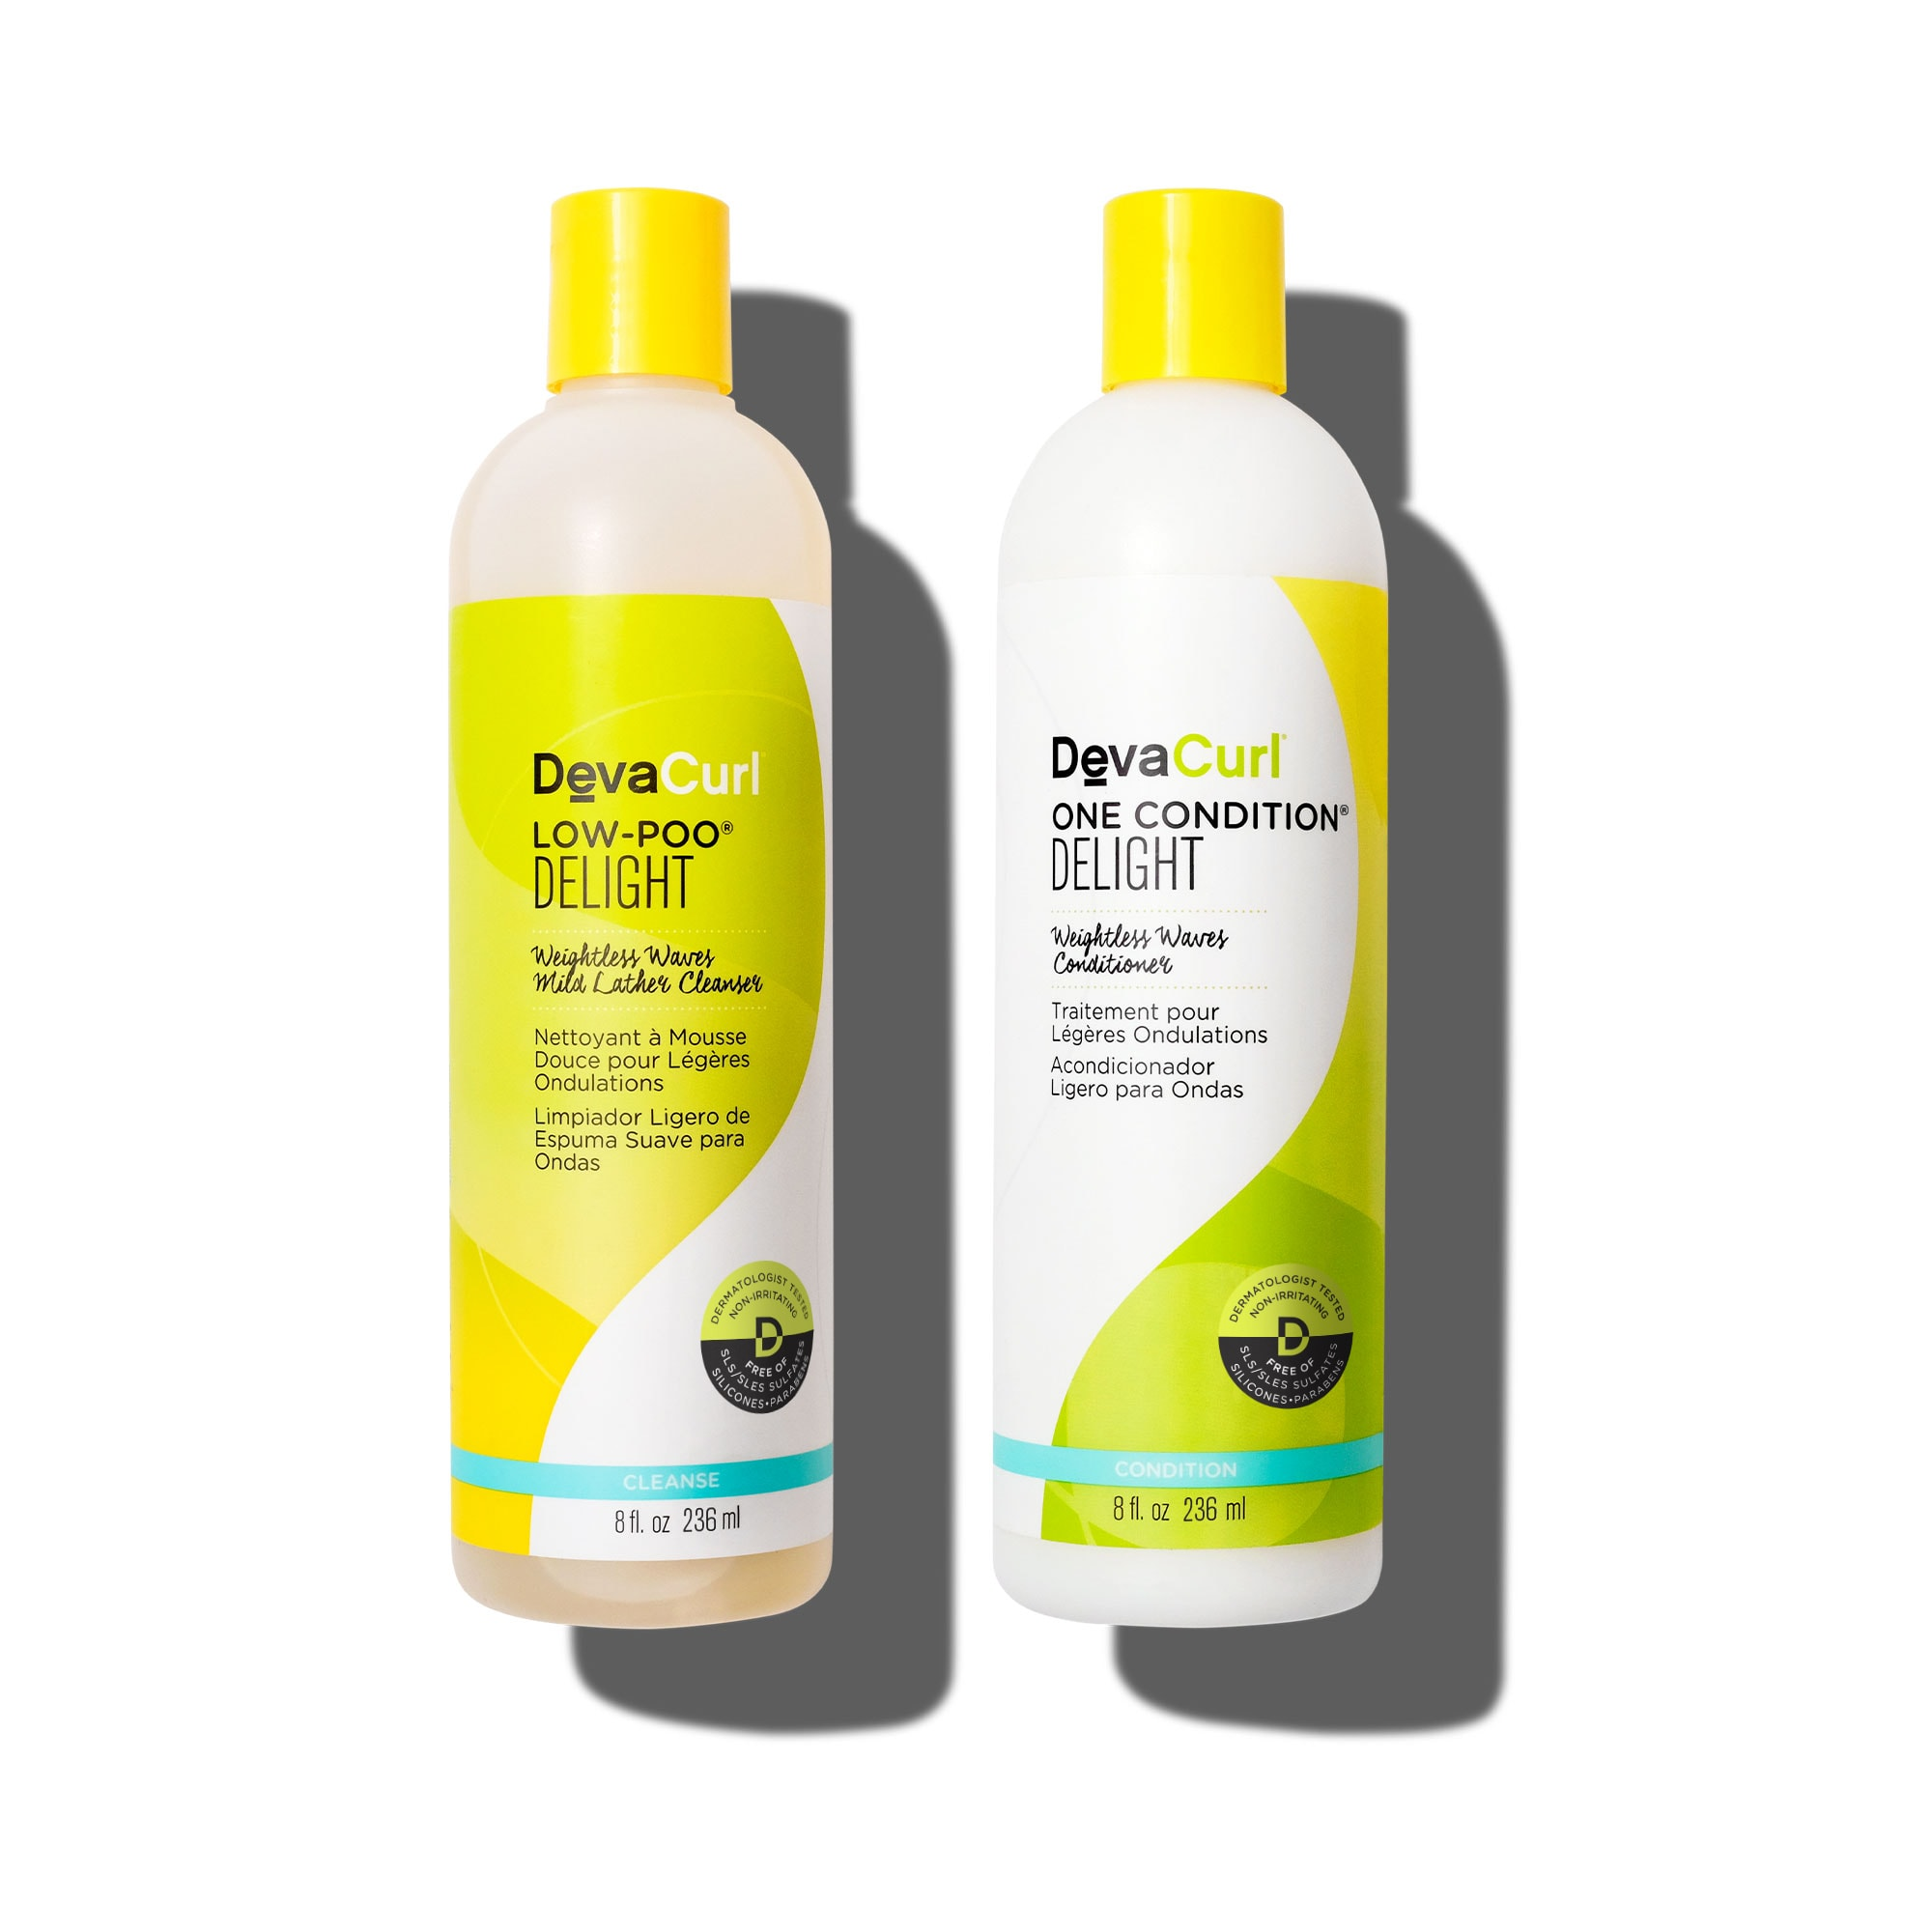 Low-Poo & One Condition Delight 12oz bottles